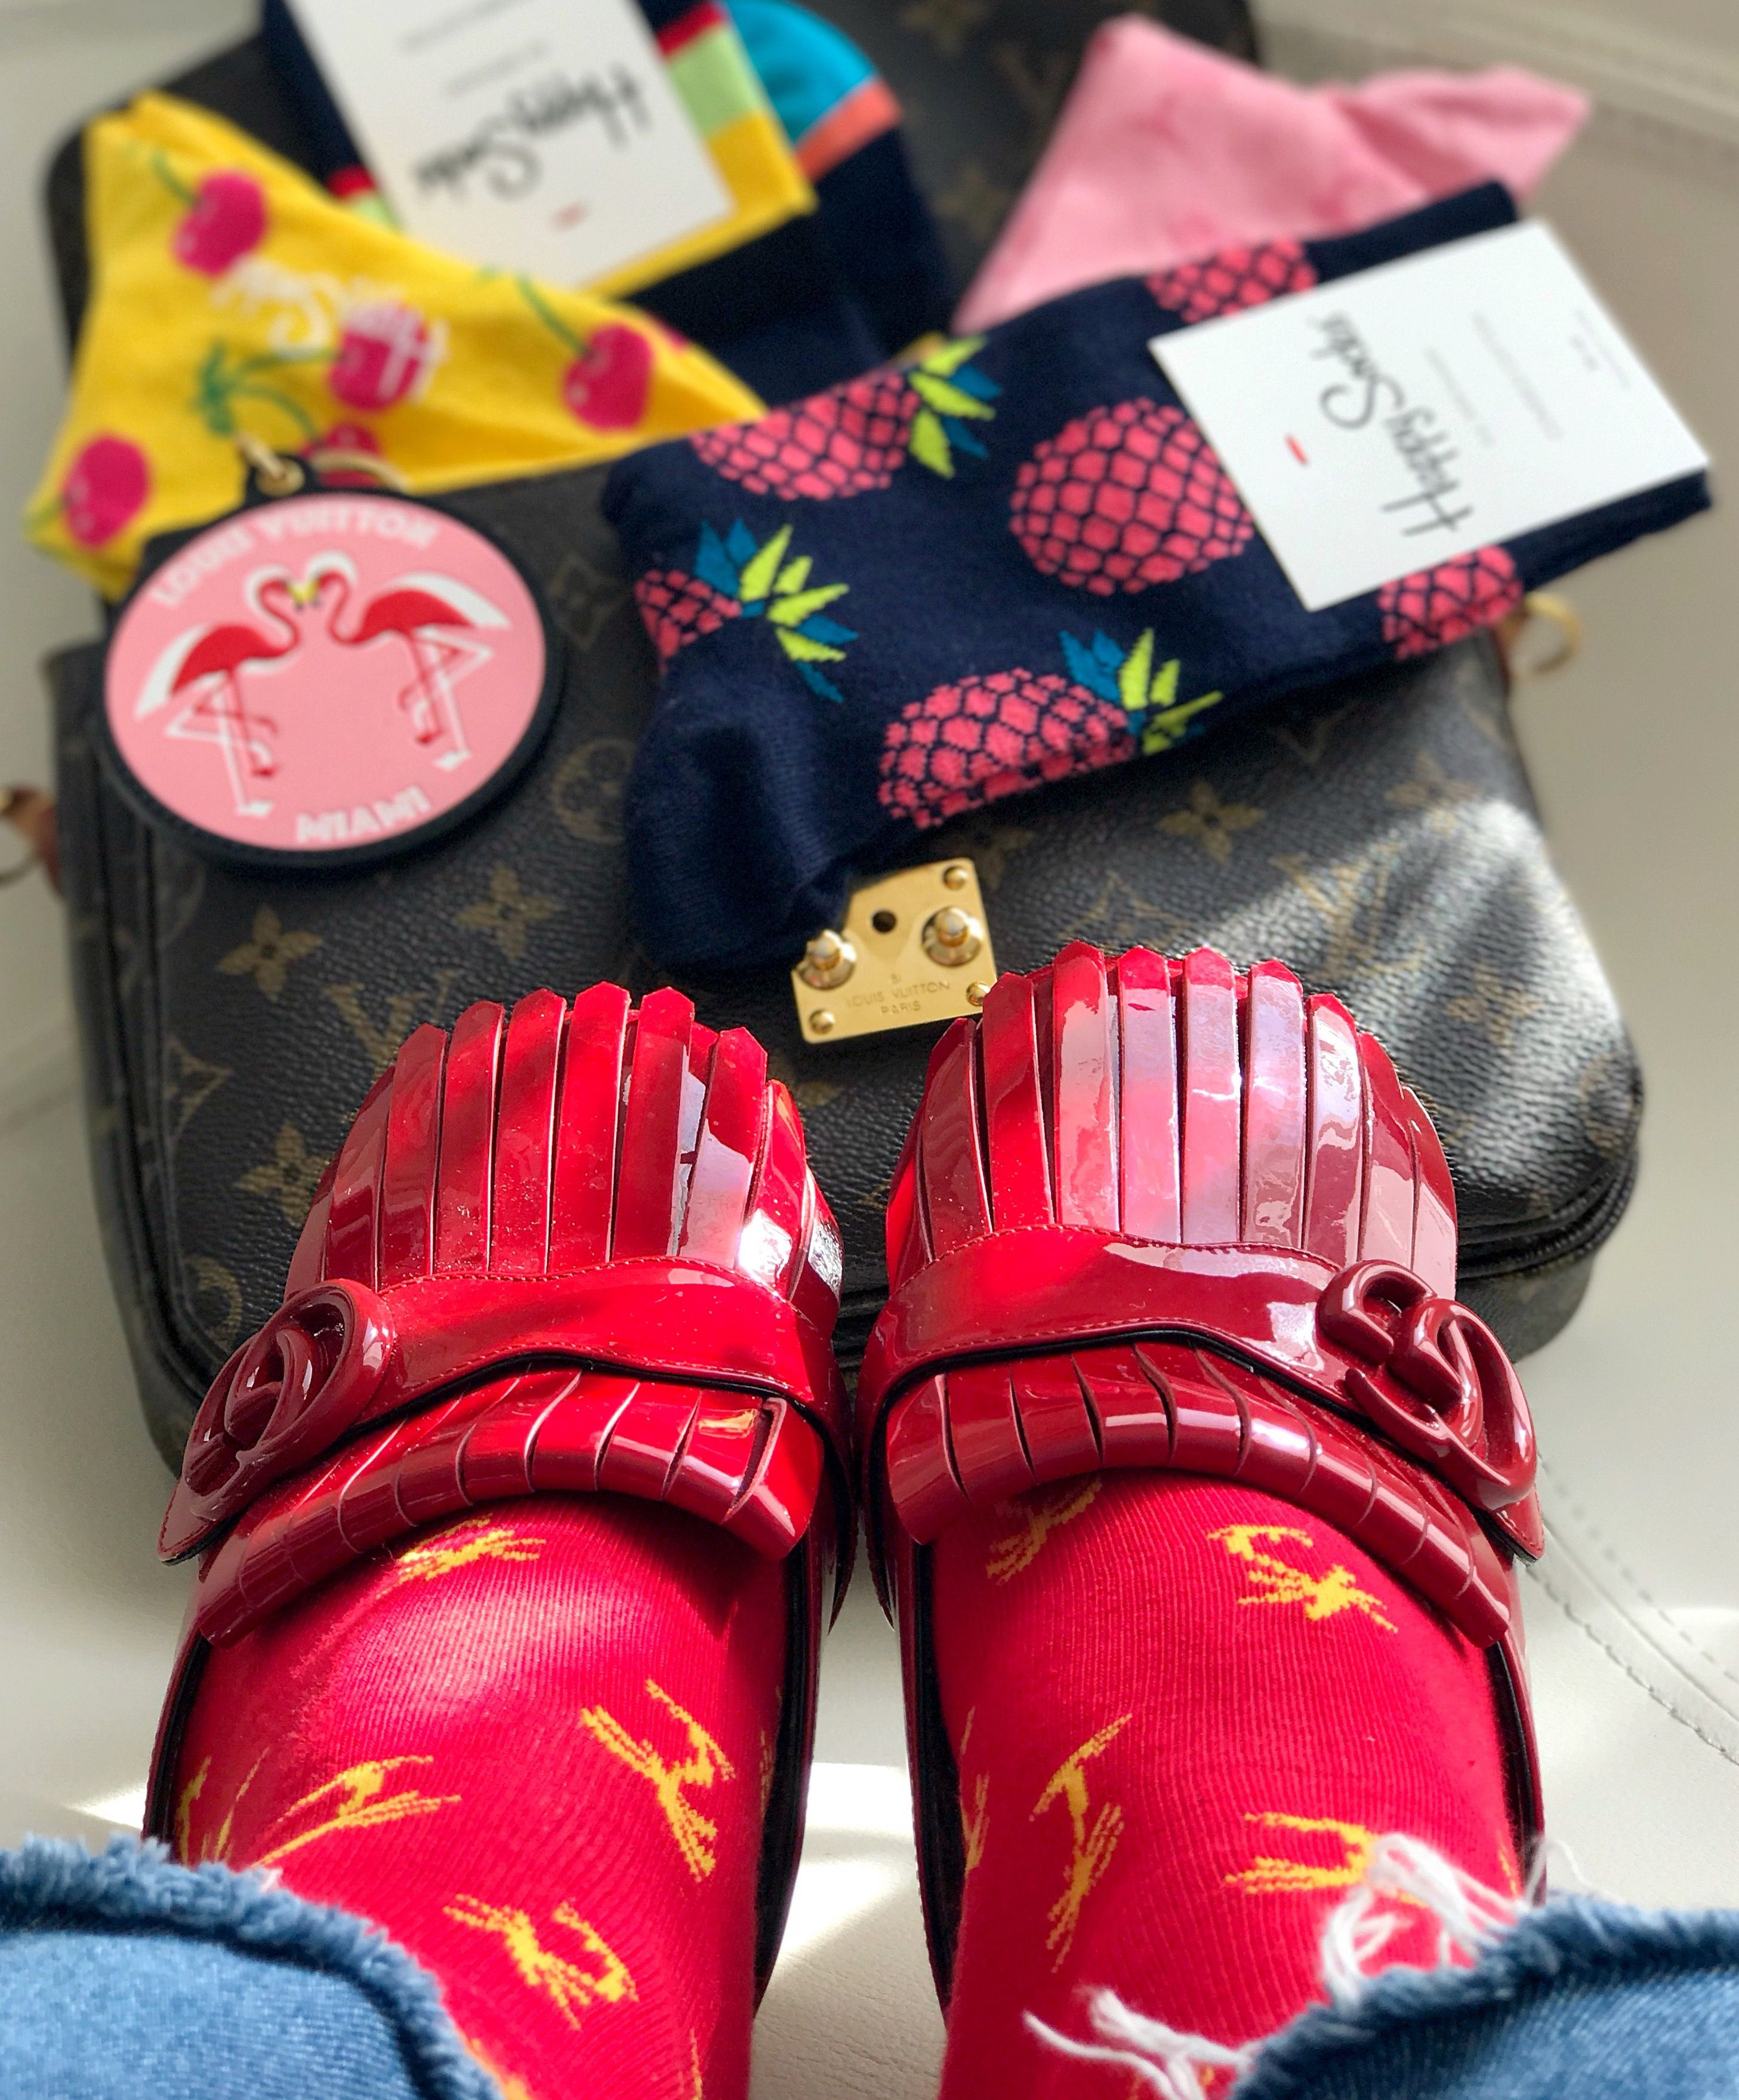 Flache Schuhe Roter Teppich Gucci Shoes Louis Vuitton Metis Happy Socks Schuhe Gucci